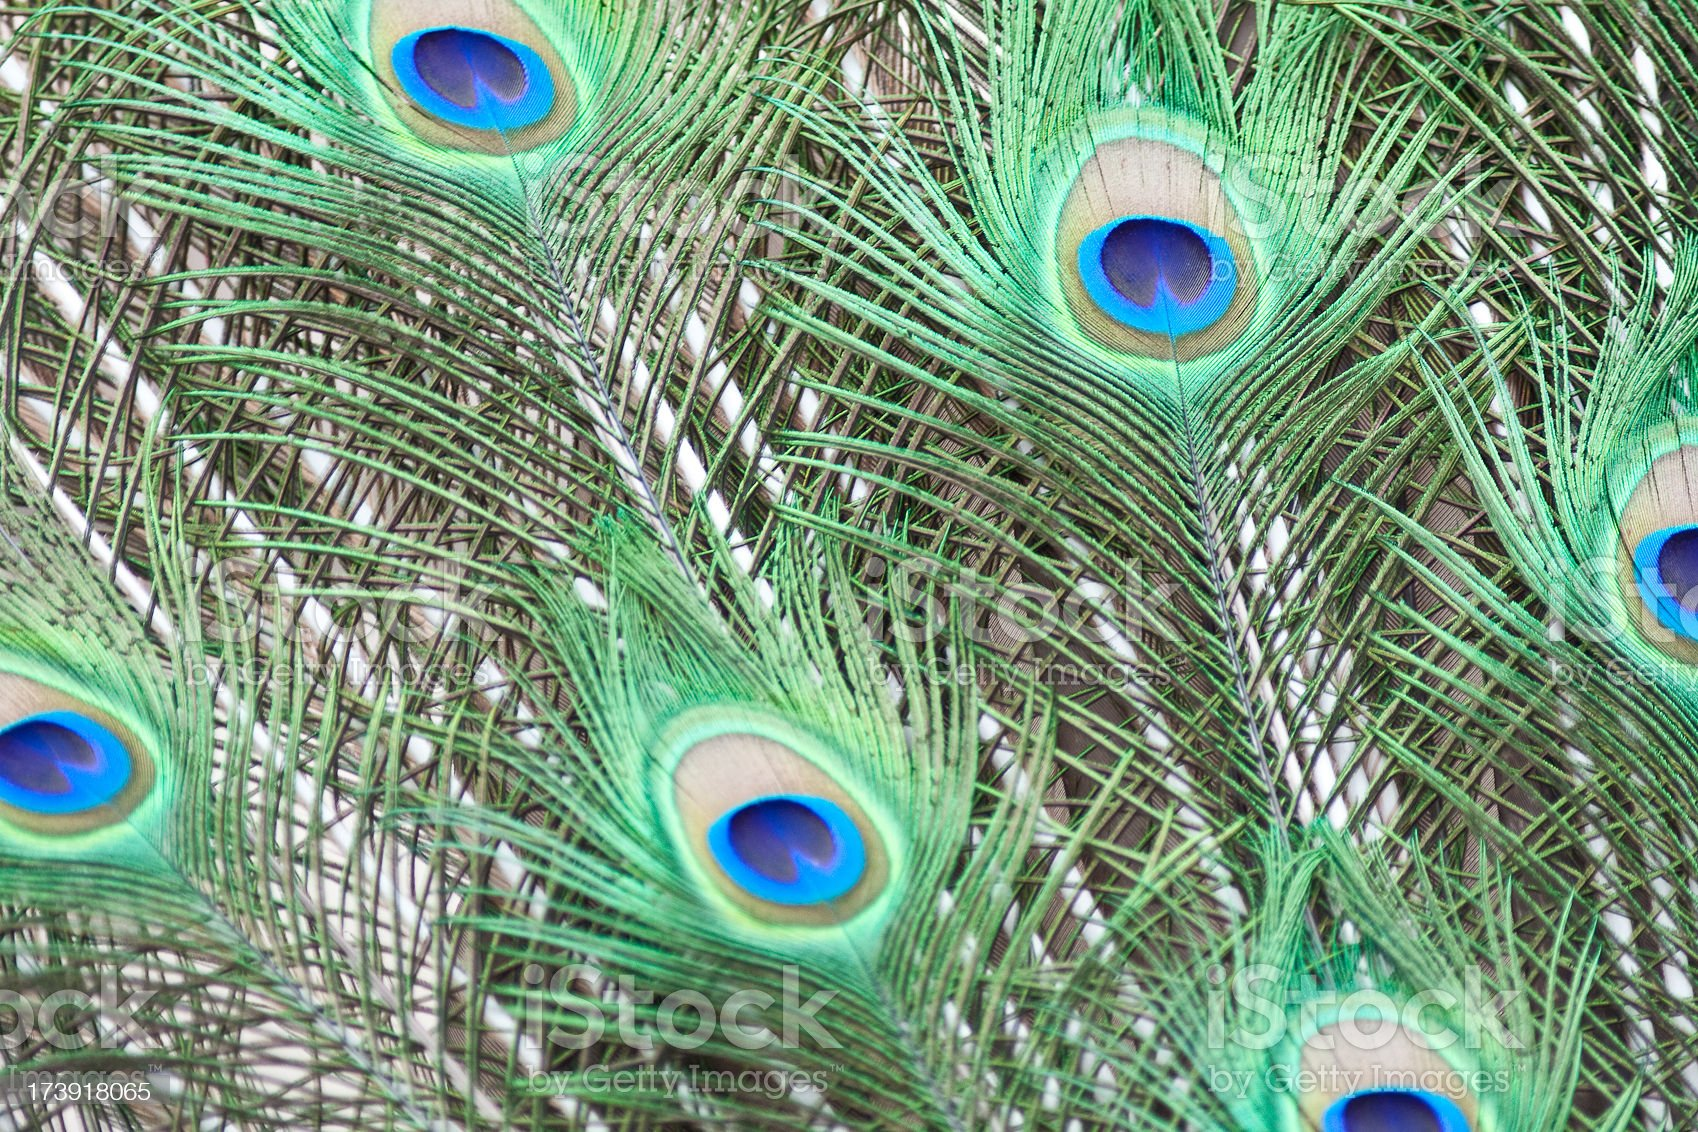 Peacock Feathers royalty-free stock photo